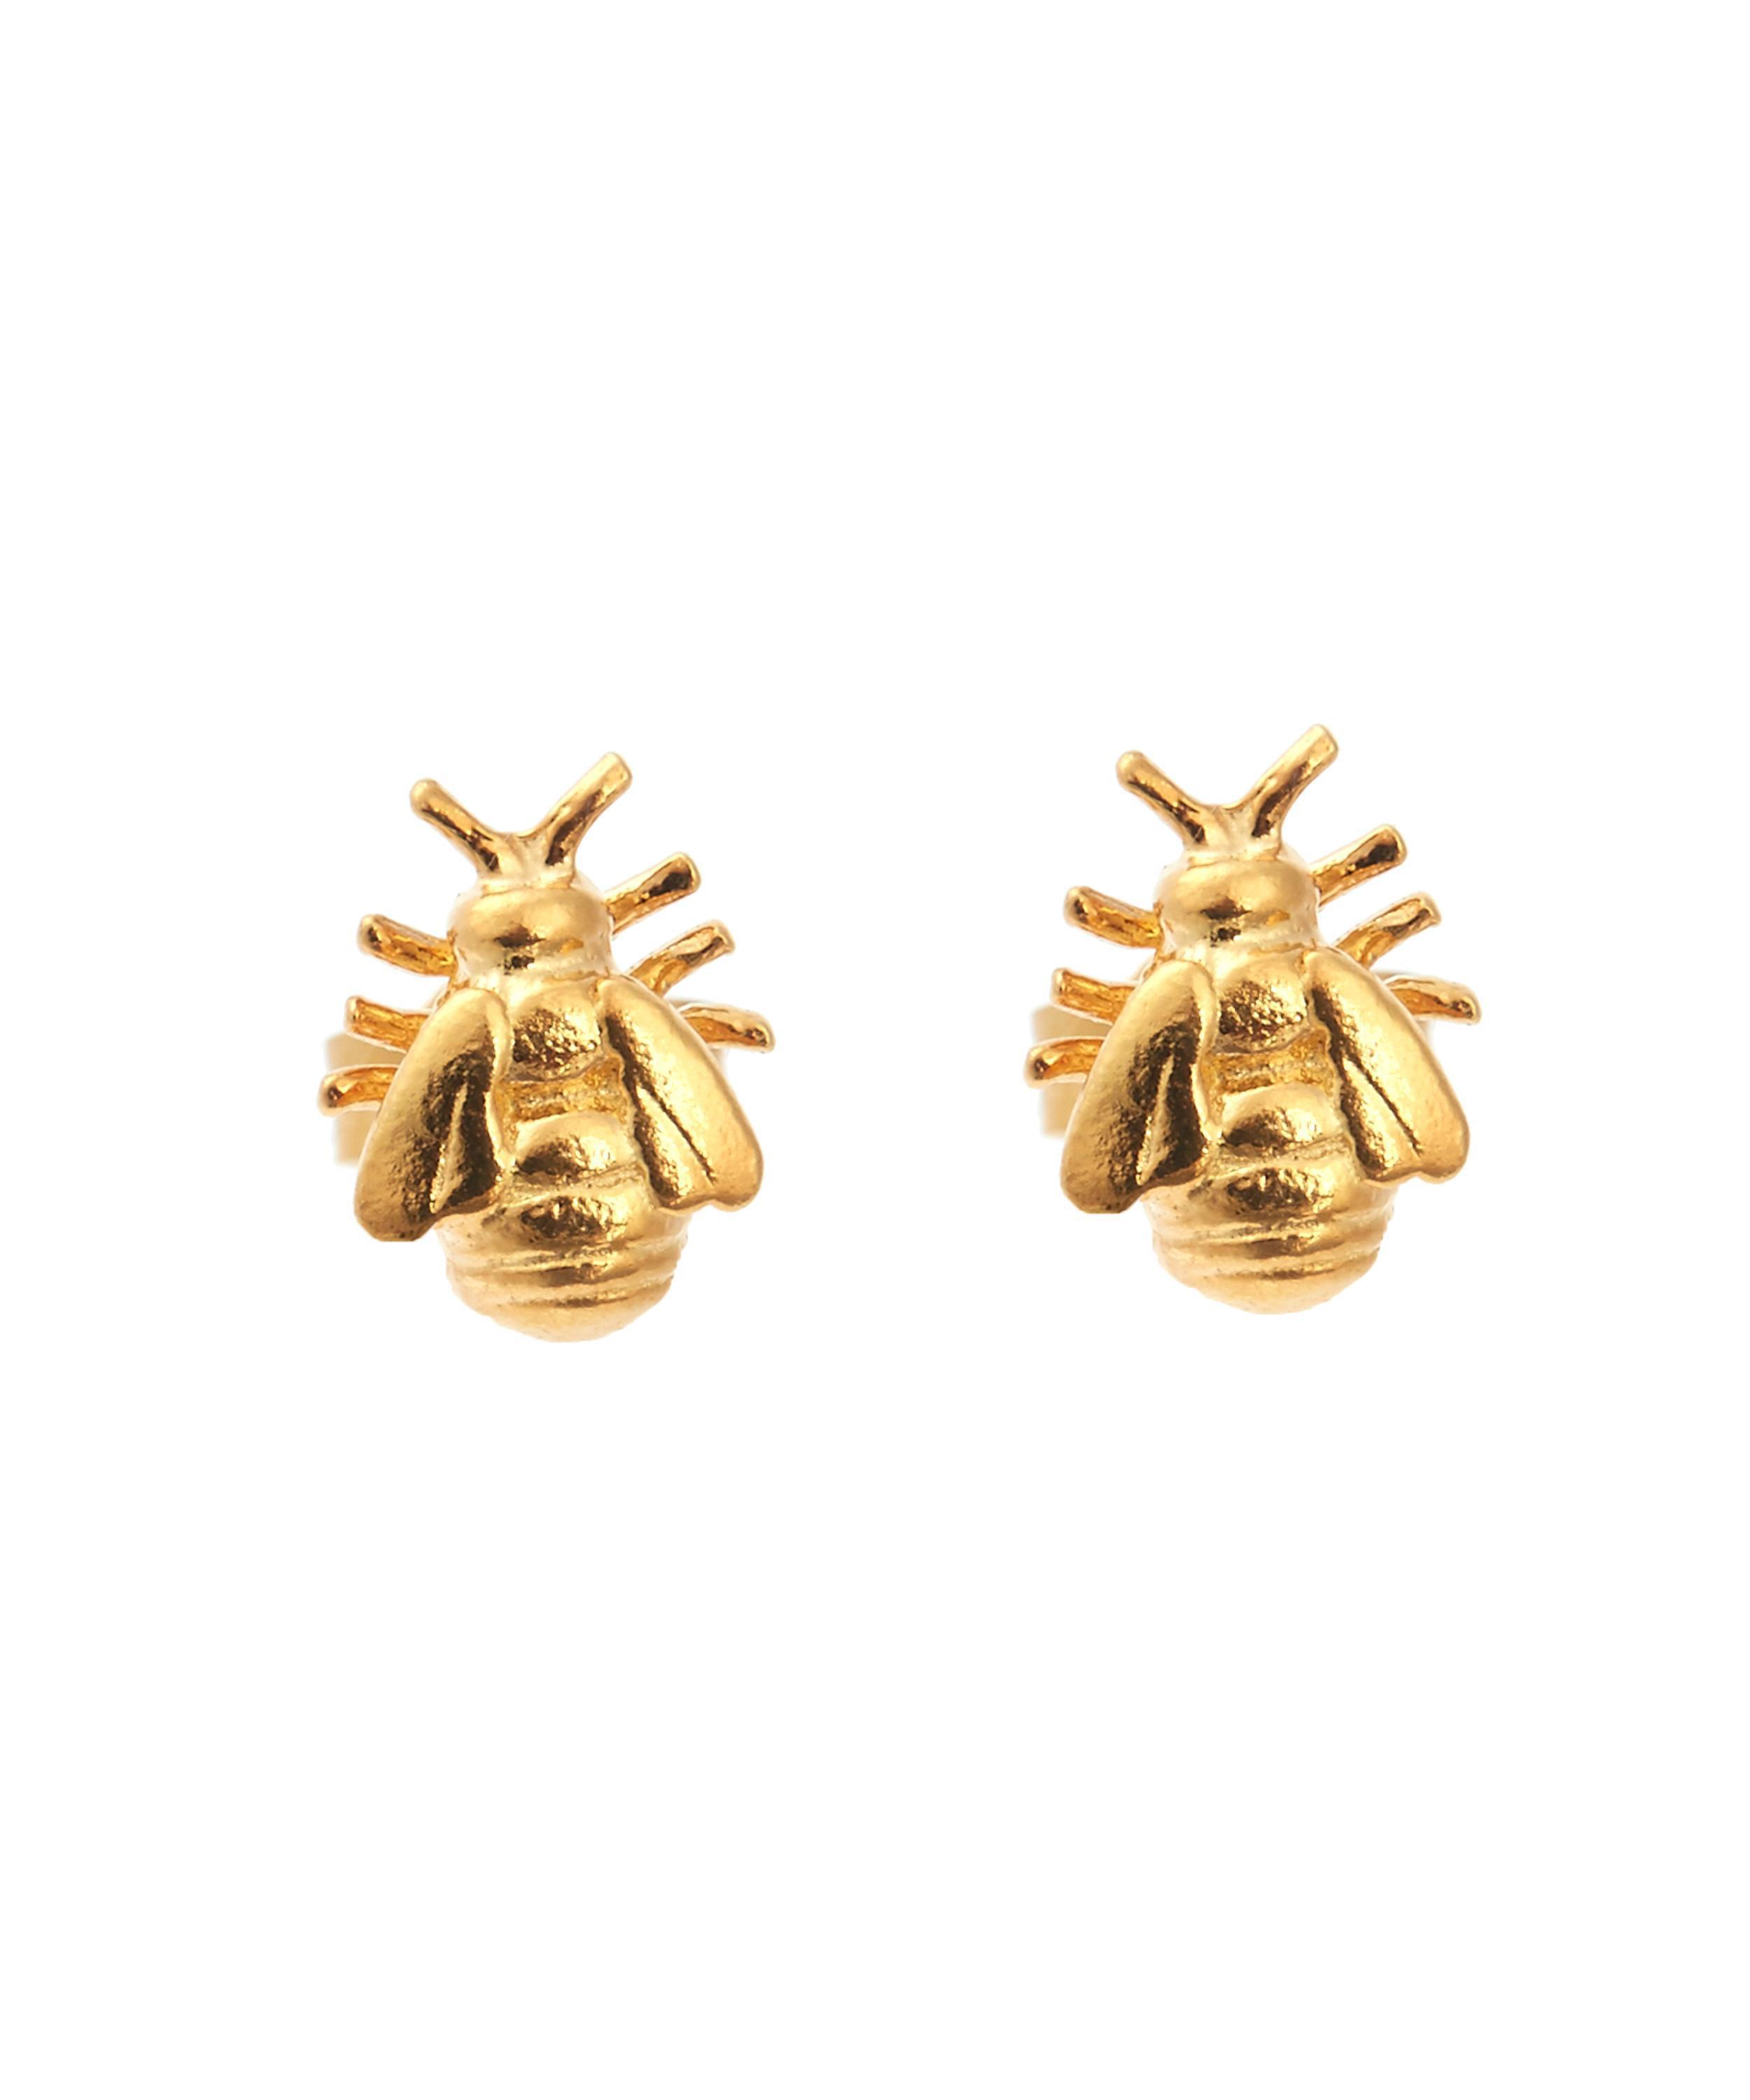 lab skinner hexagon bee bill styling personal earring stud shop mutrend earing